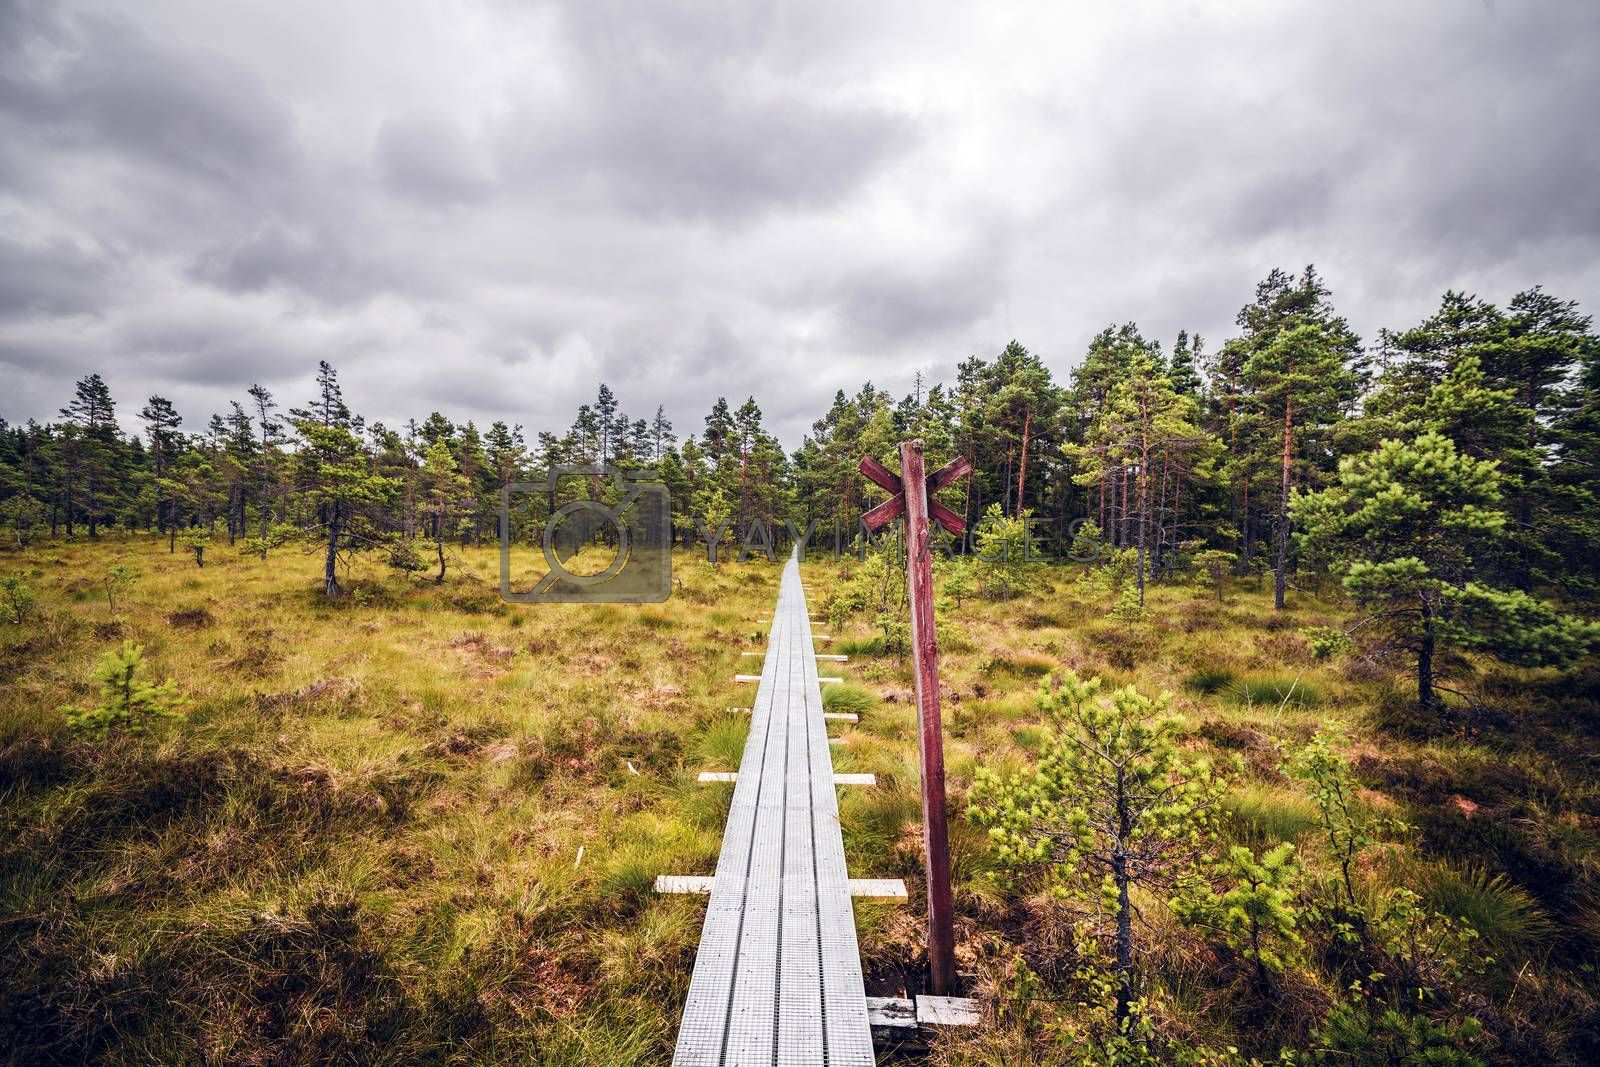 Hiking trail with a red post in a wilderness landscape